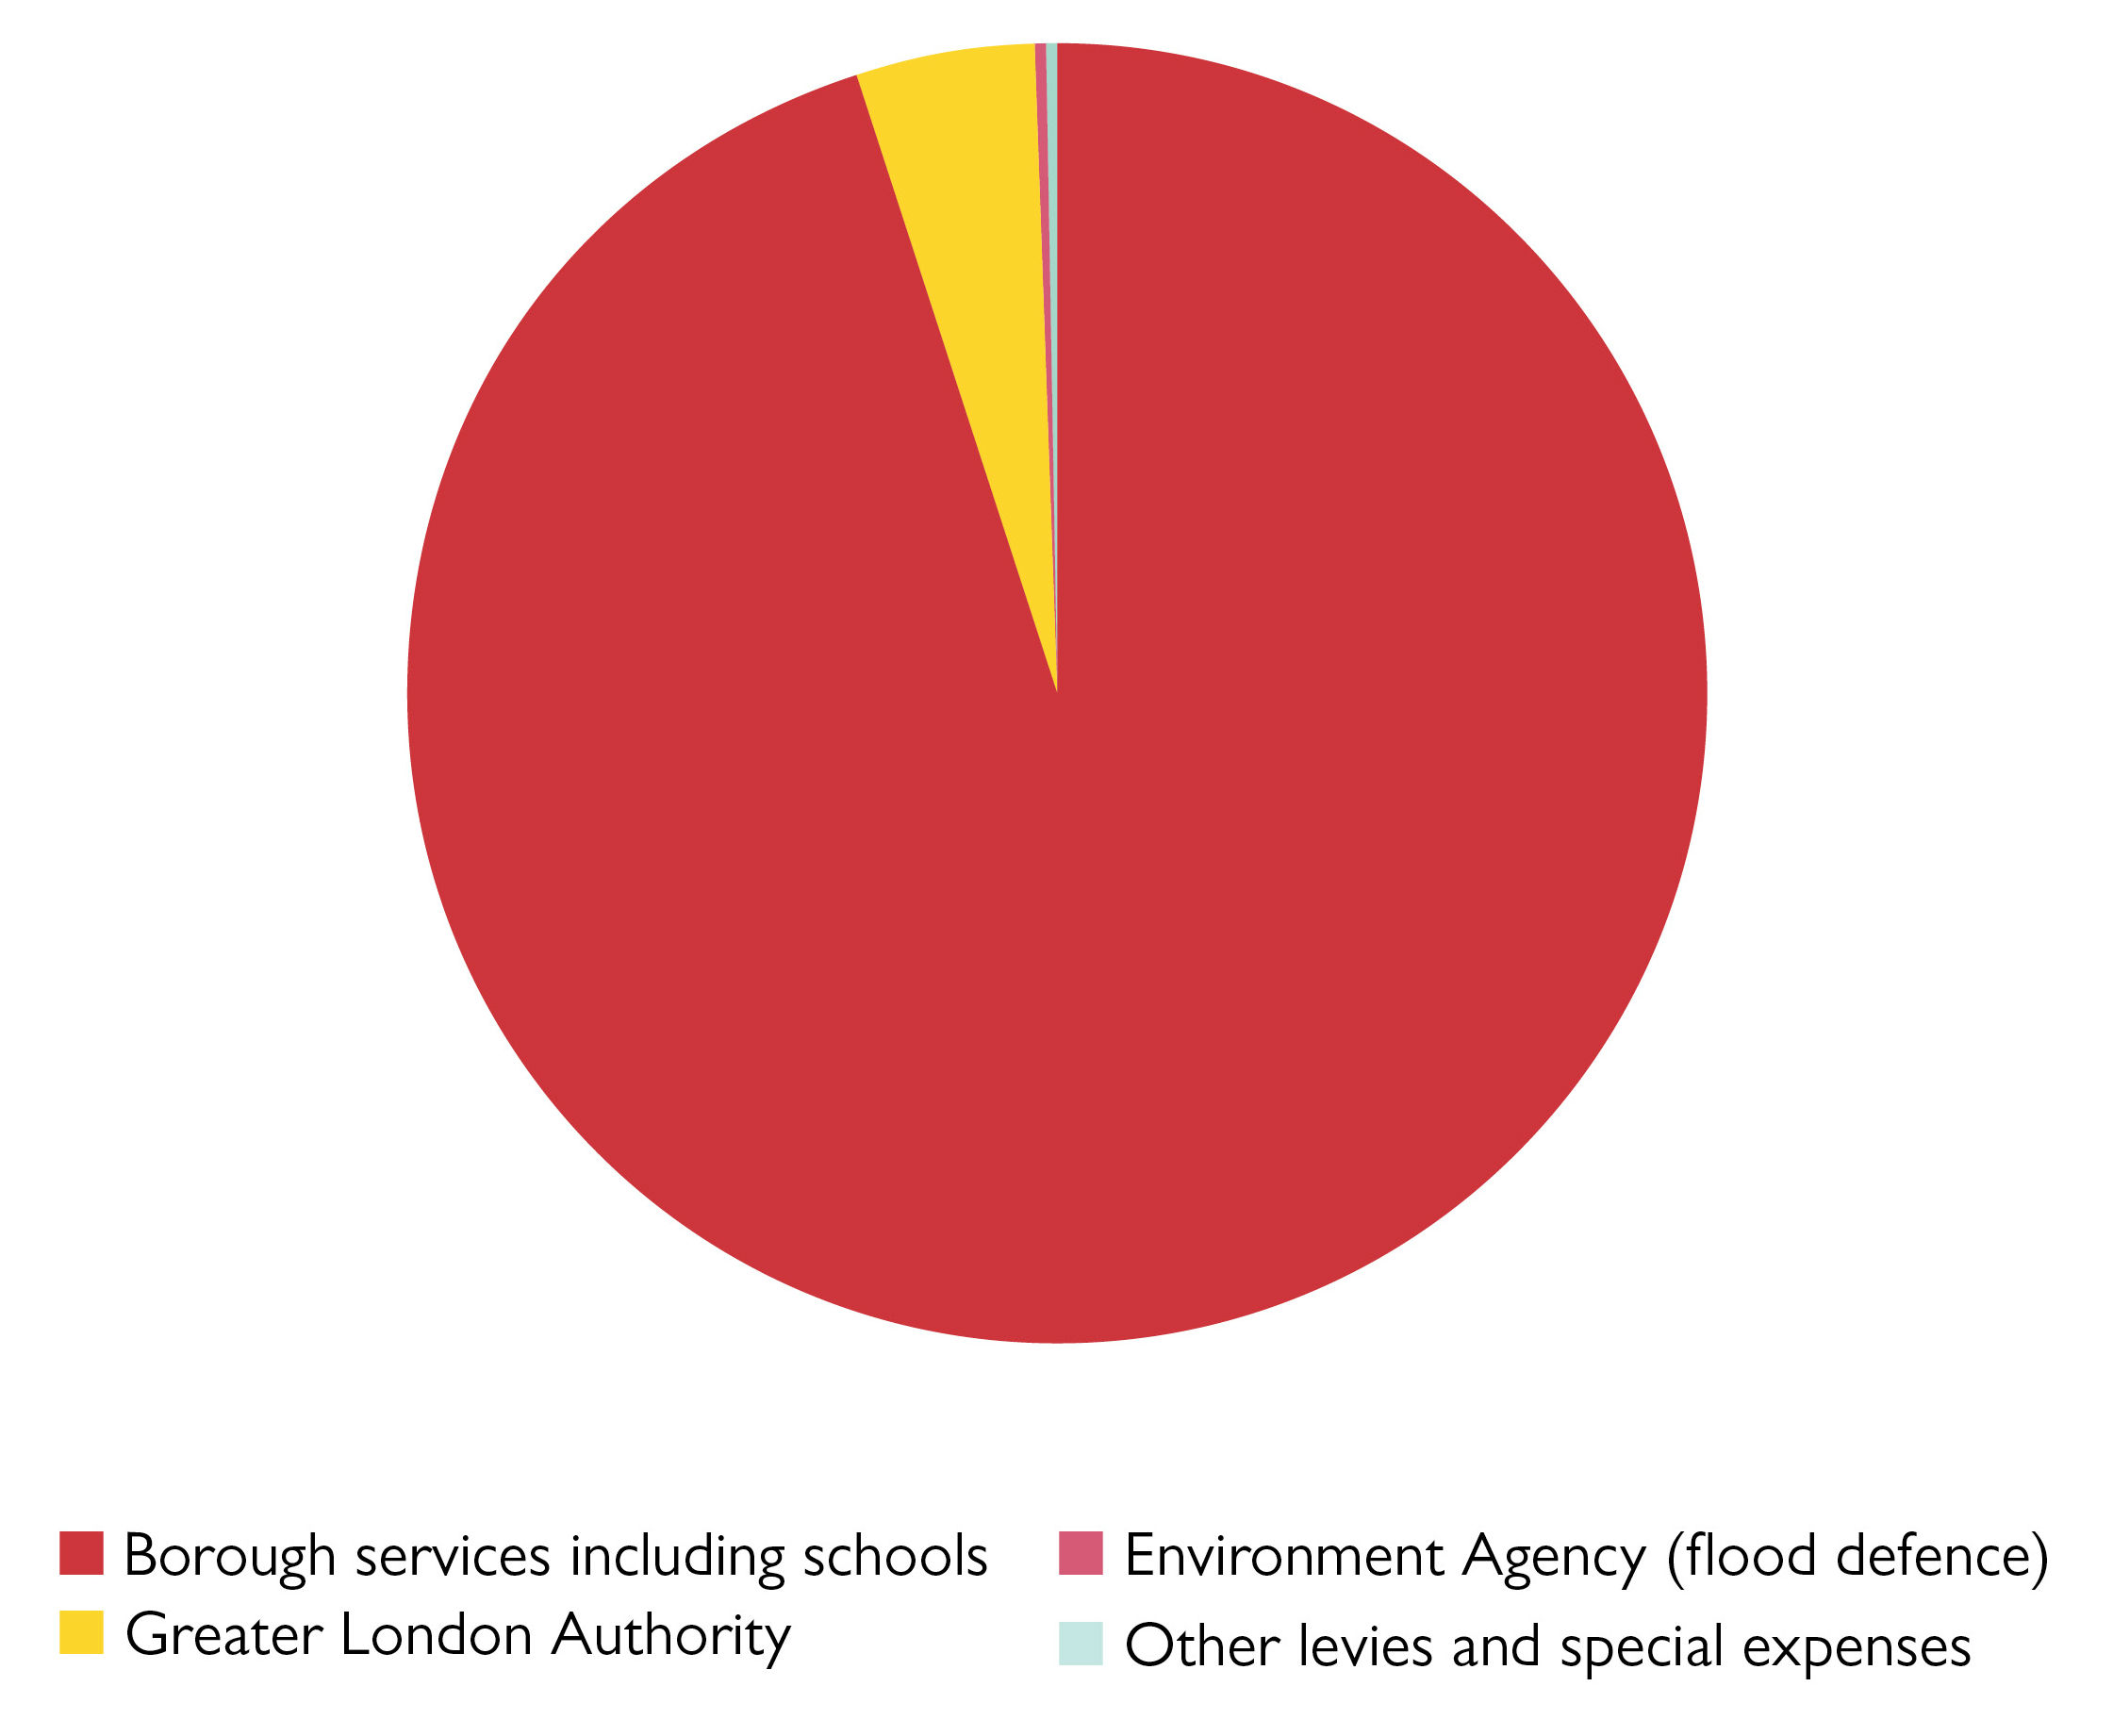 Pie chart to show Where the council spends its money. Figures below.